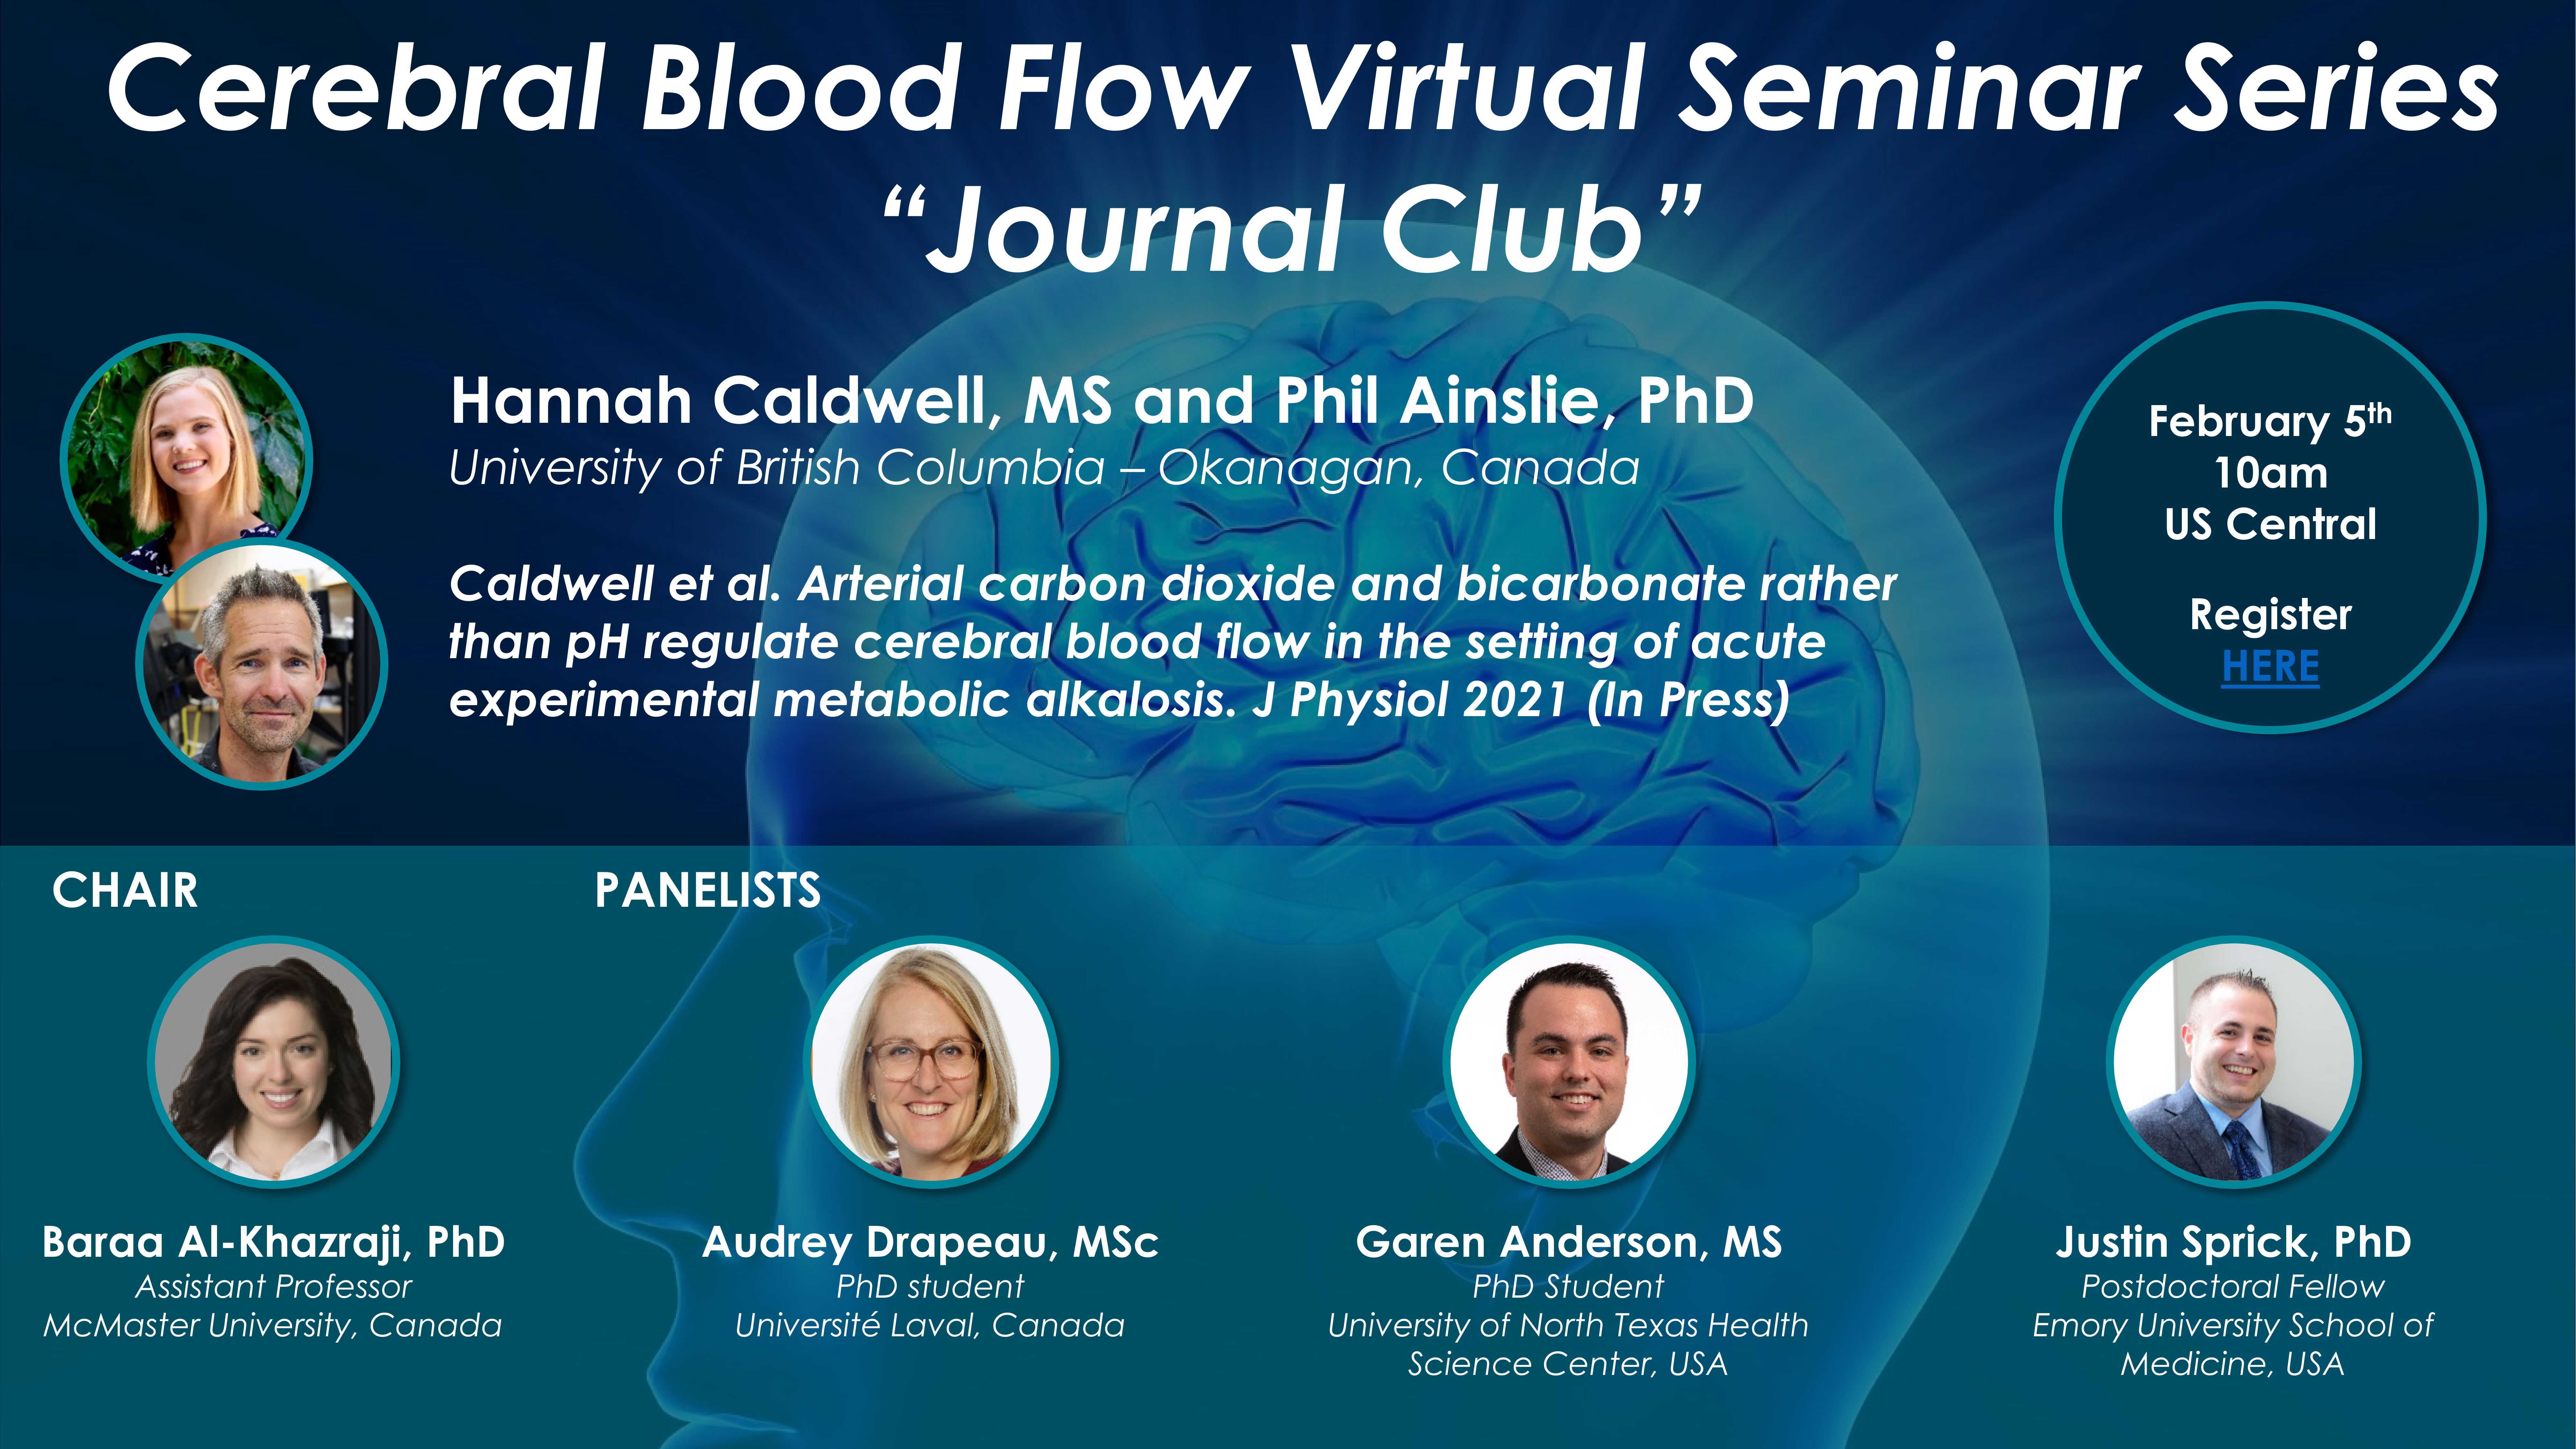 February 5 CBF VSS Journal Club session